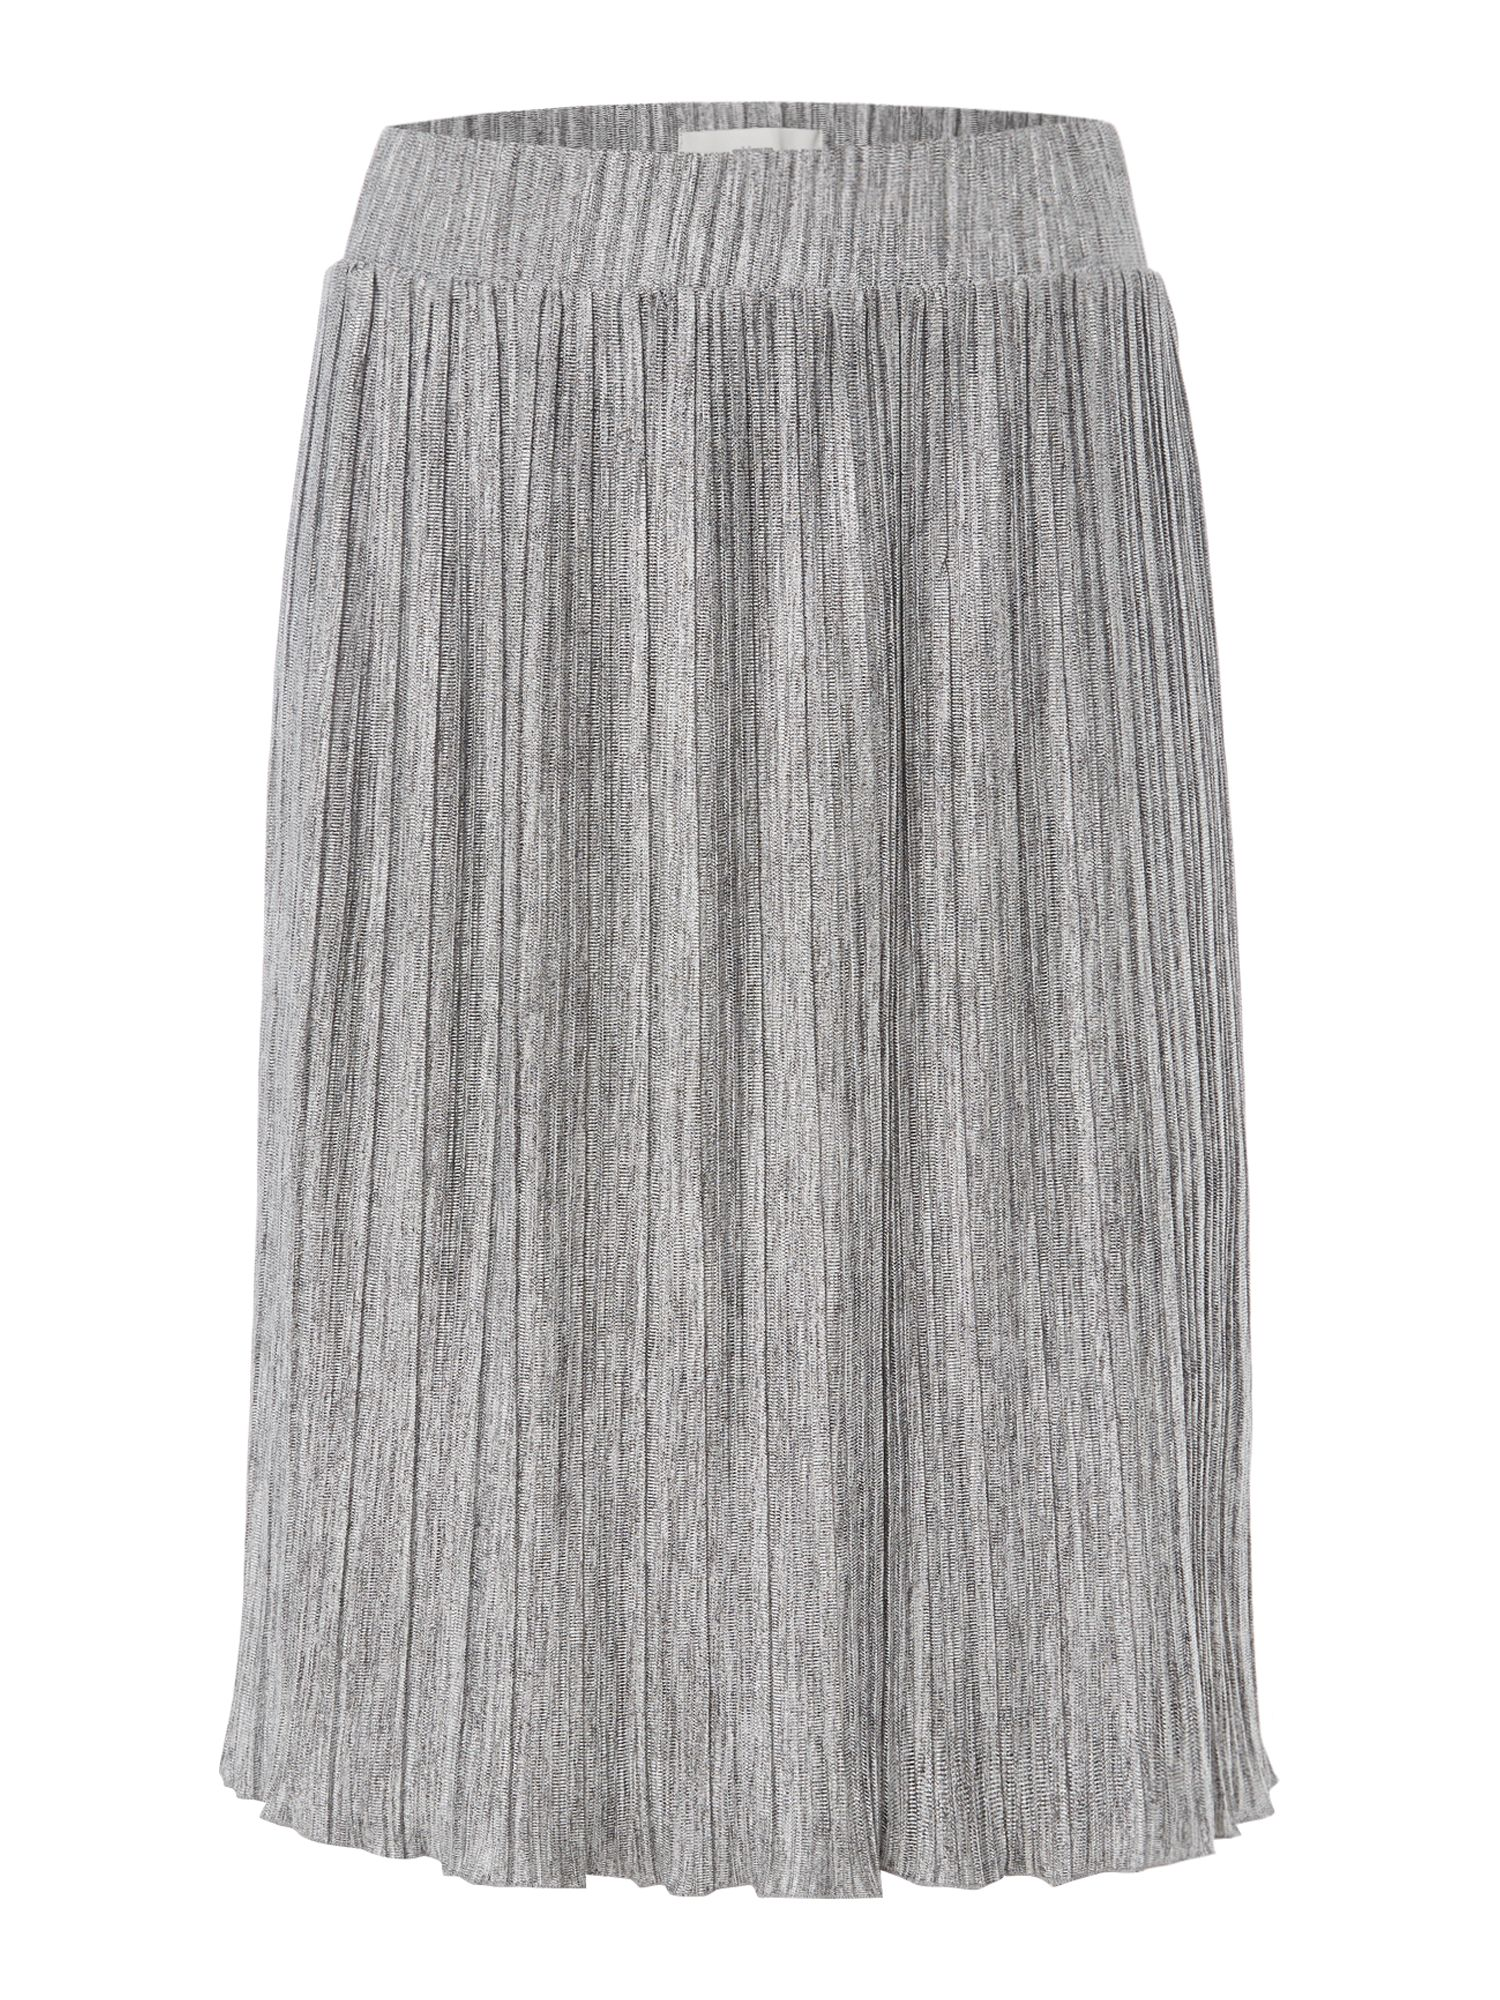 Minimum Lilyann Skirt, Grey